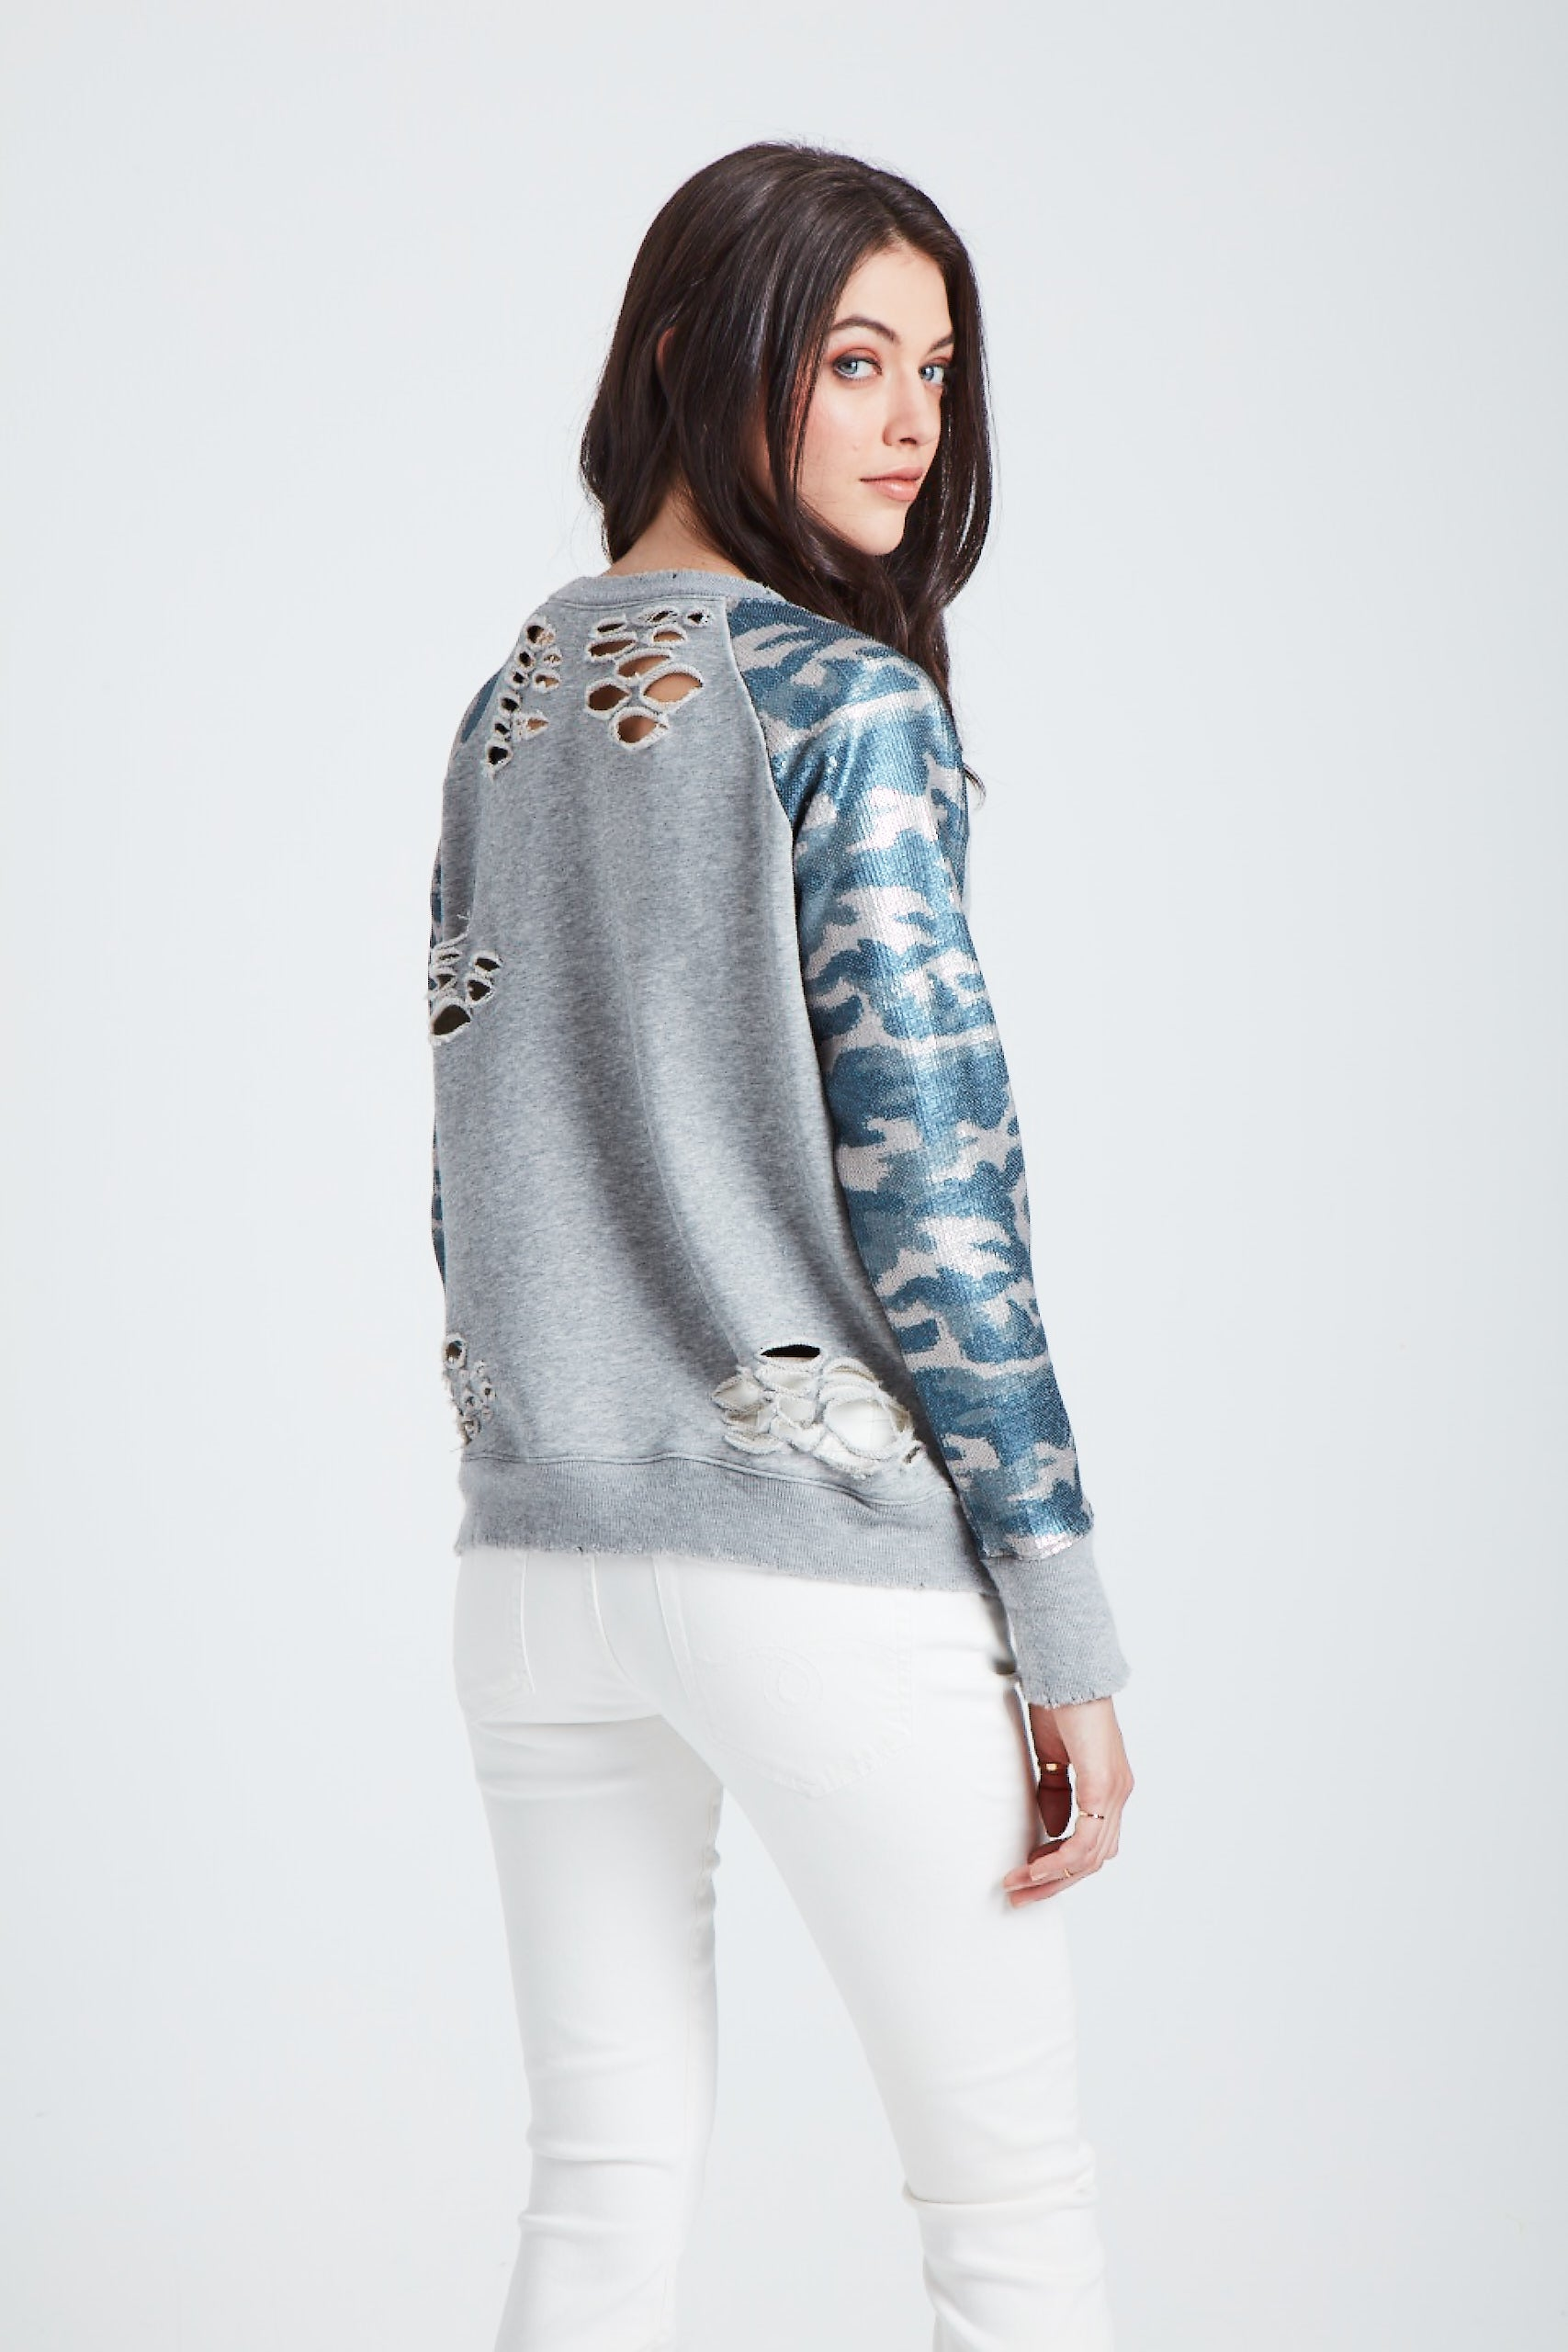 The Galactic Halo Sweatshirt - Camo